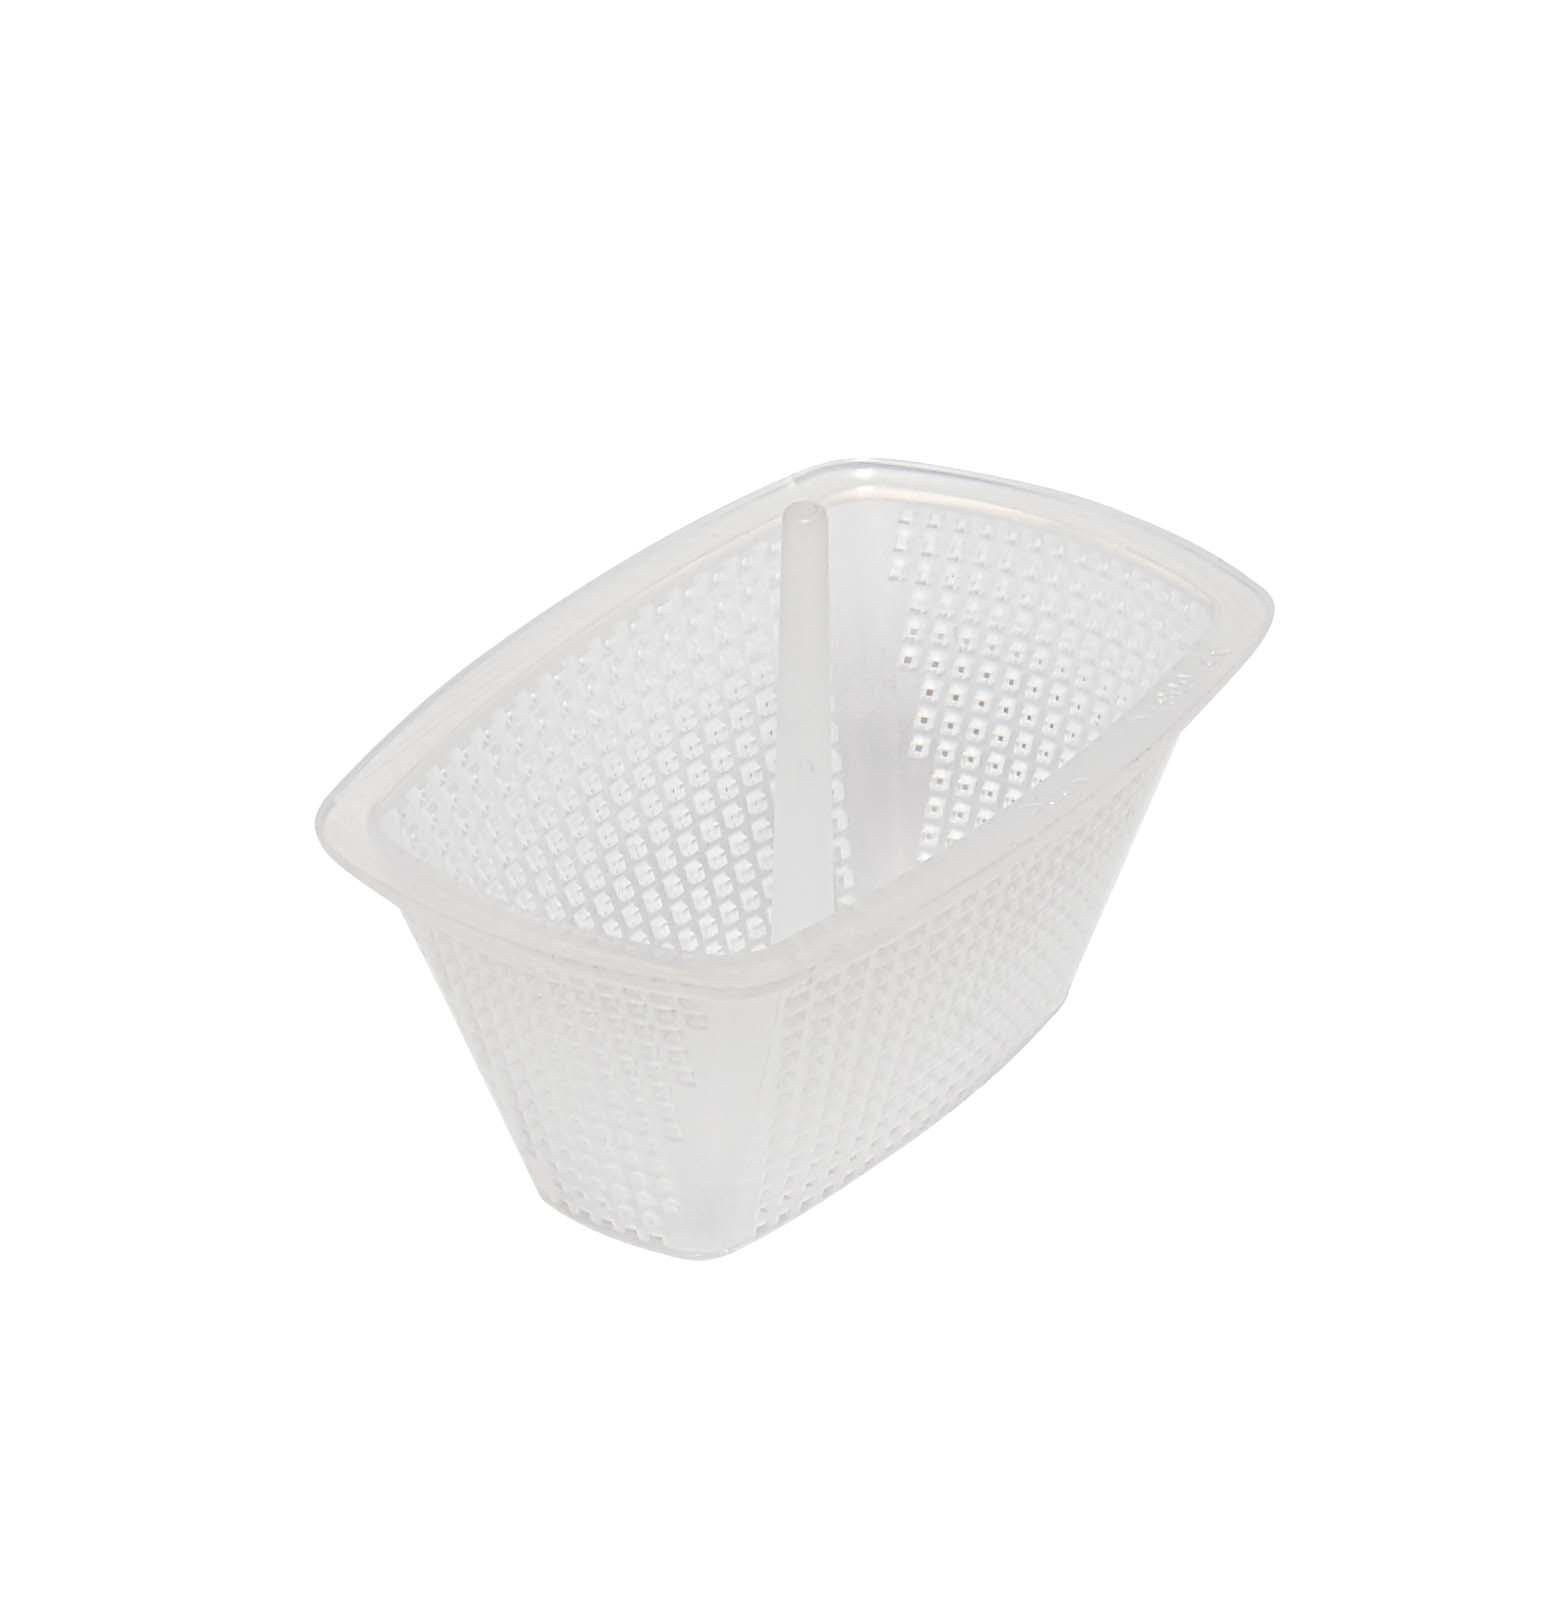 Filter, Vacuum Trap, Solids Collector, Series 5, Pkg of 100